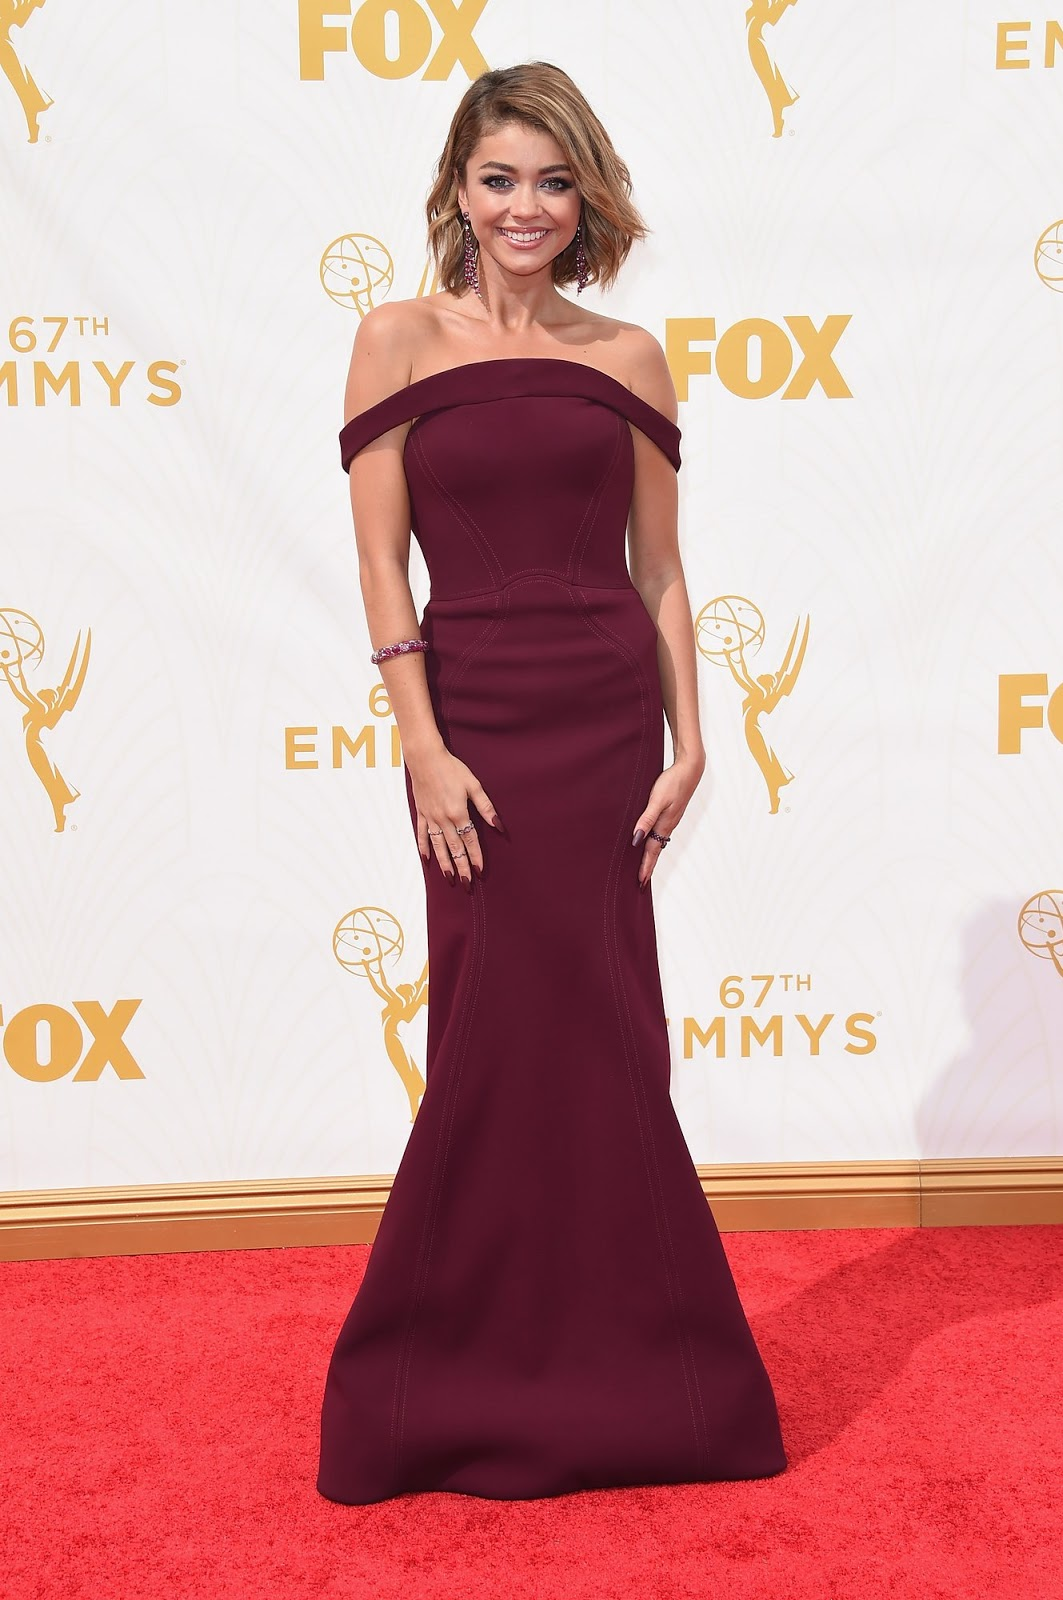 EMMYS 2015: FIVE OF THE RED CARPET'S BEST DRESSED